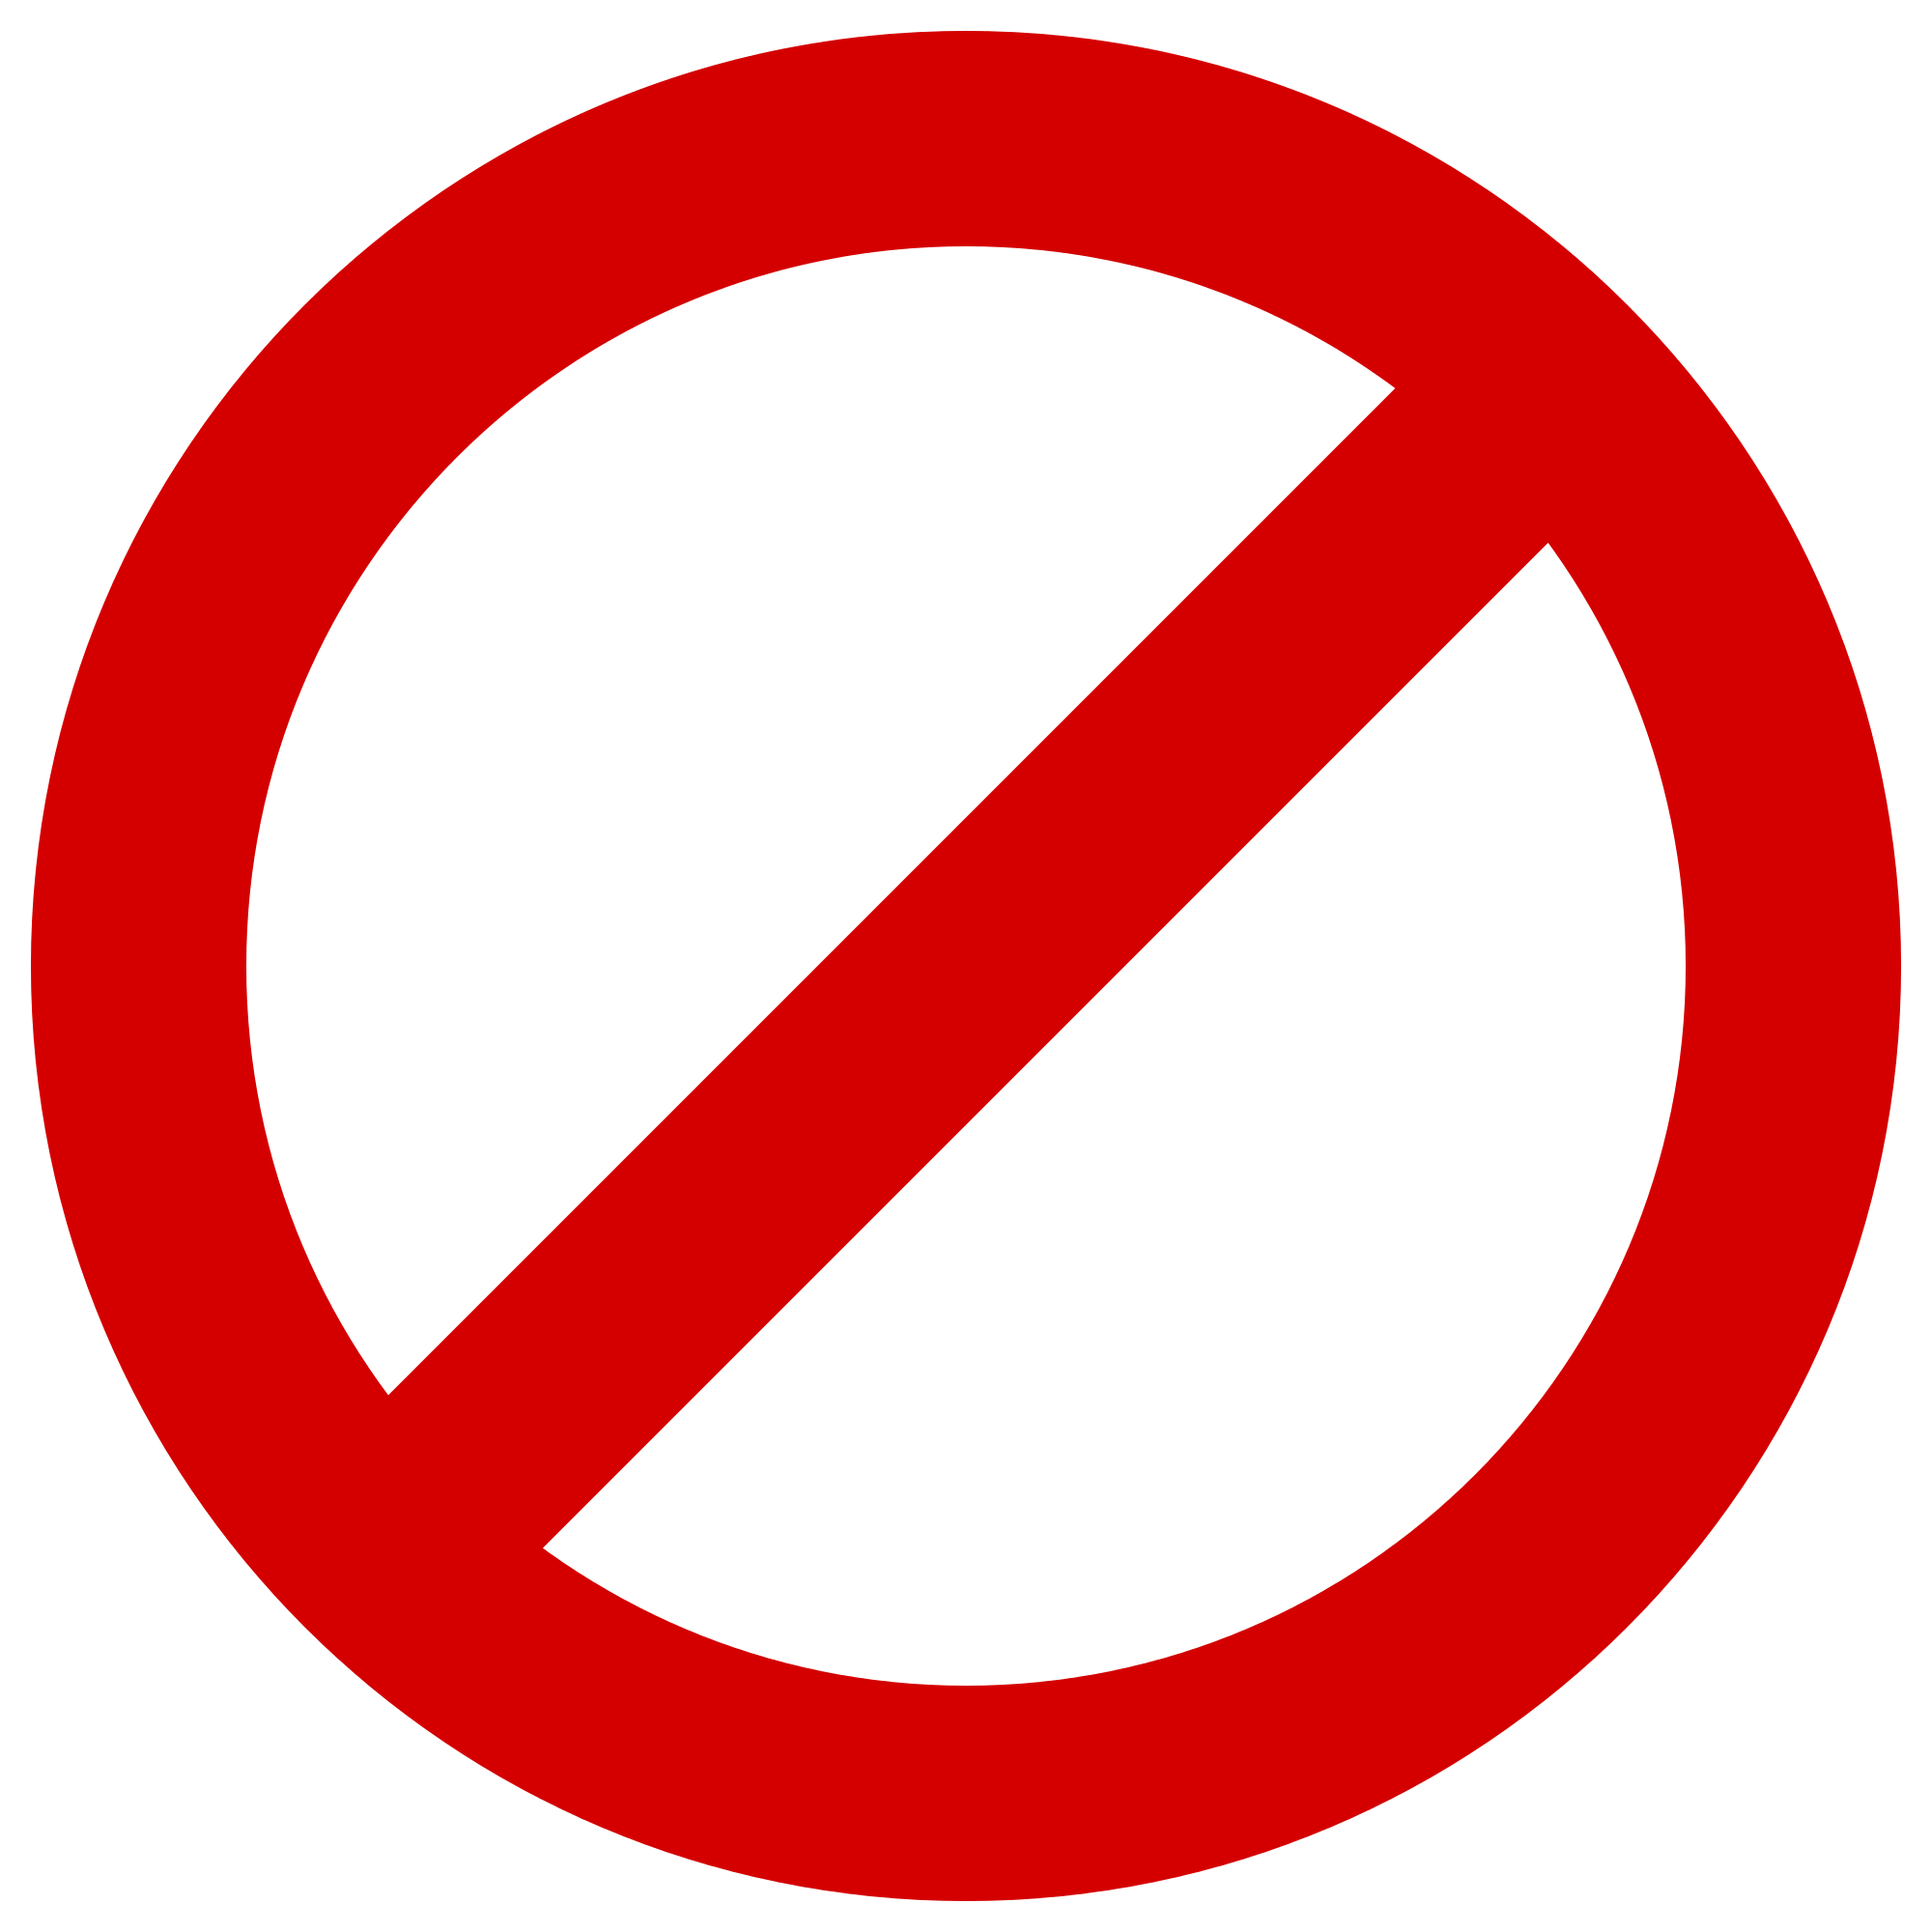 File:Forbidden Symbol.svg - Wikimedia Commons